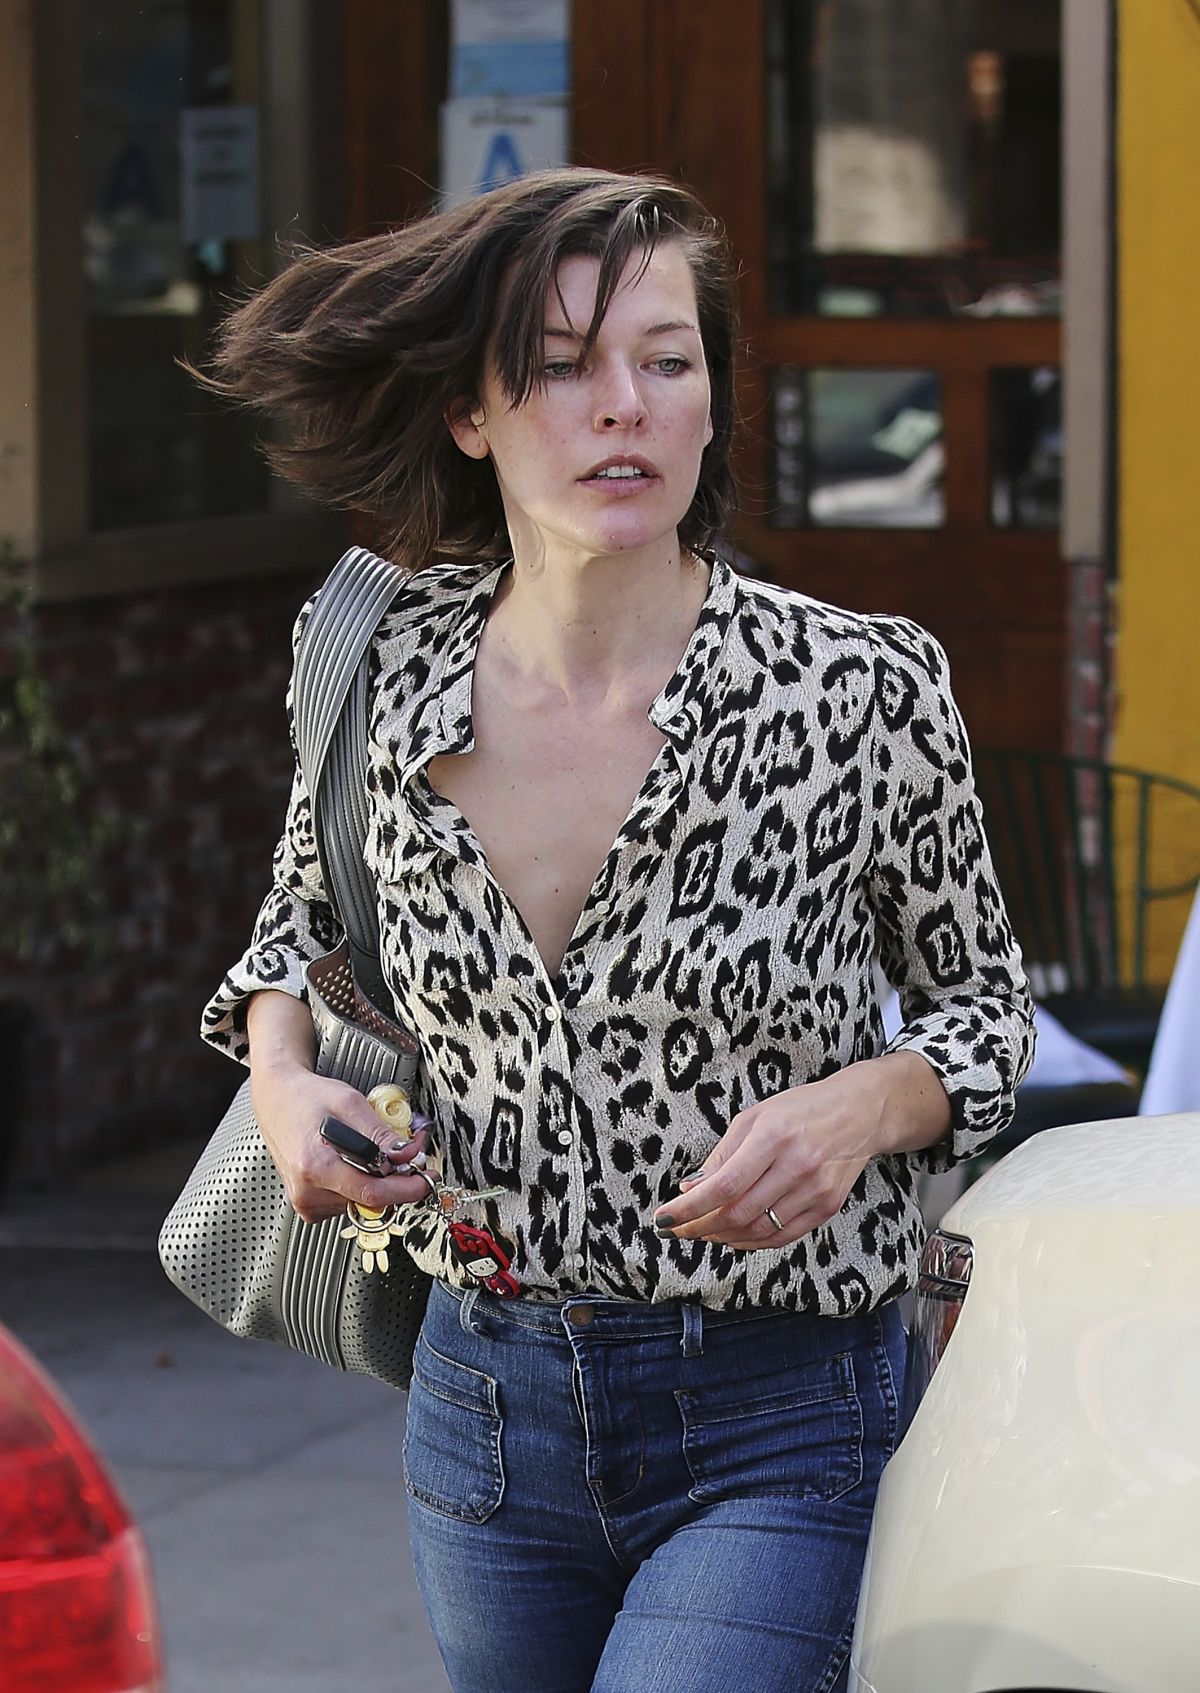 MILLA JOVOVICH Out and About in Los Angeles 06/14/2016 ... Milla Jovovich